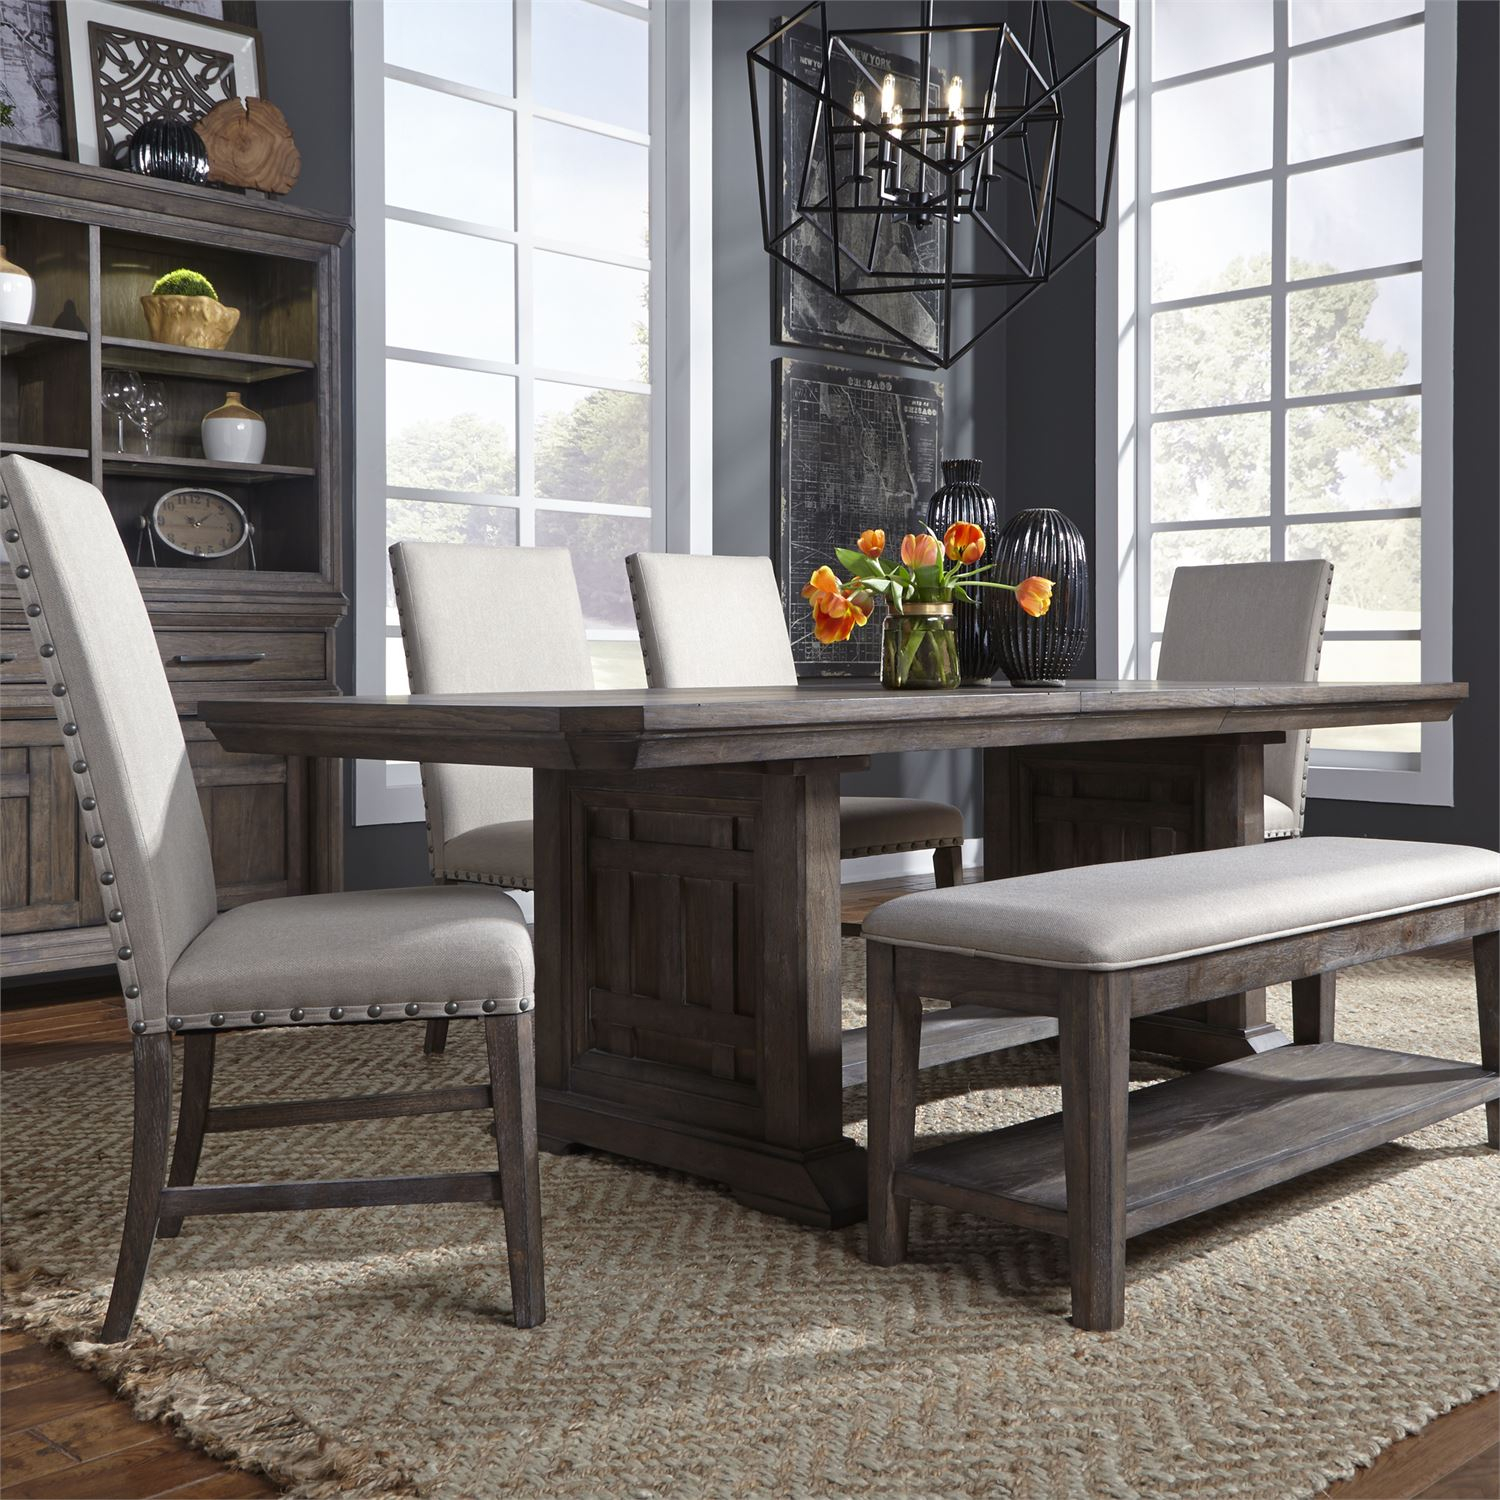 Artisan Prairie 3500 And Under Dining Room Shop By Room